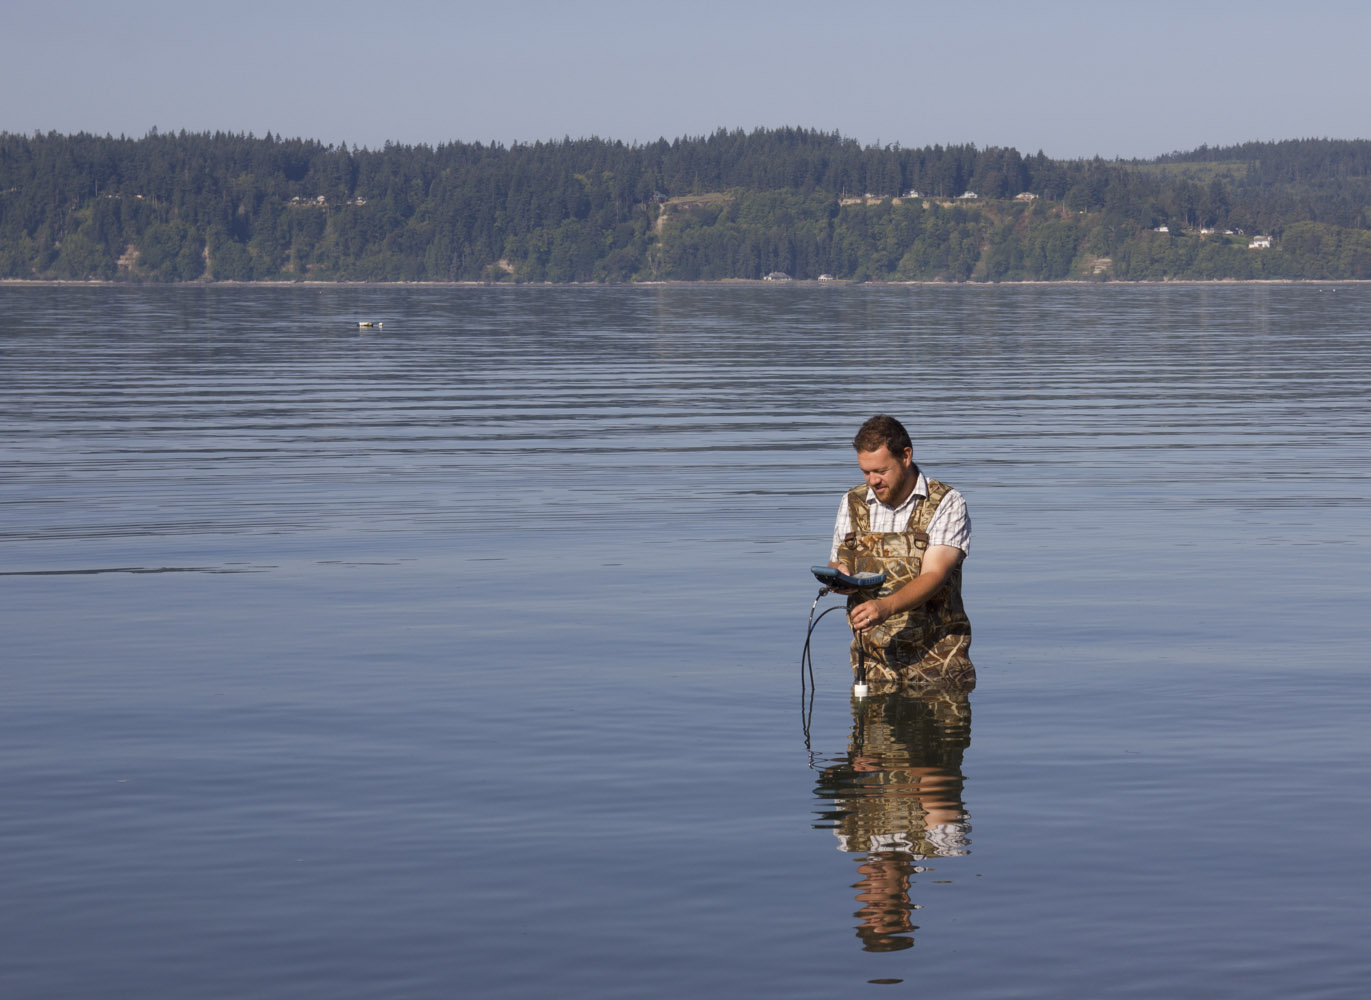 Tribes sample water quality to ensure beach safety - Northwest ...